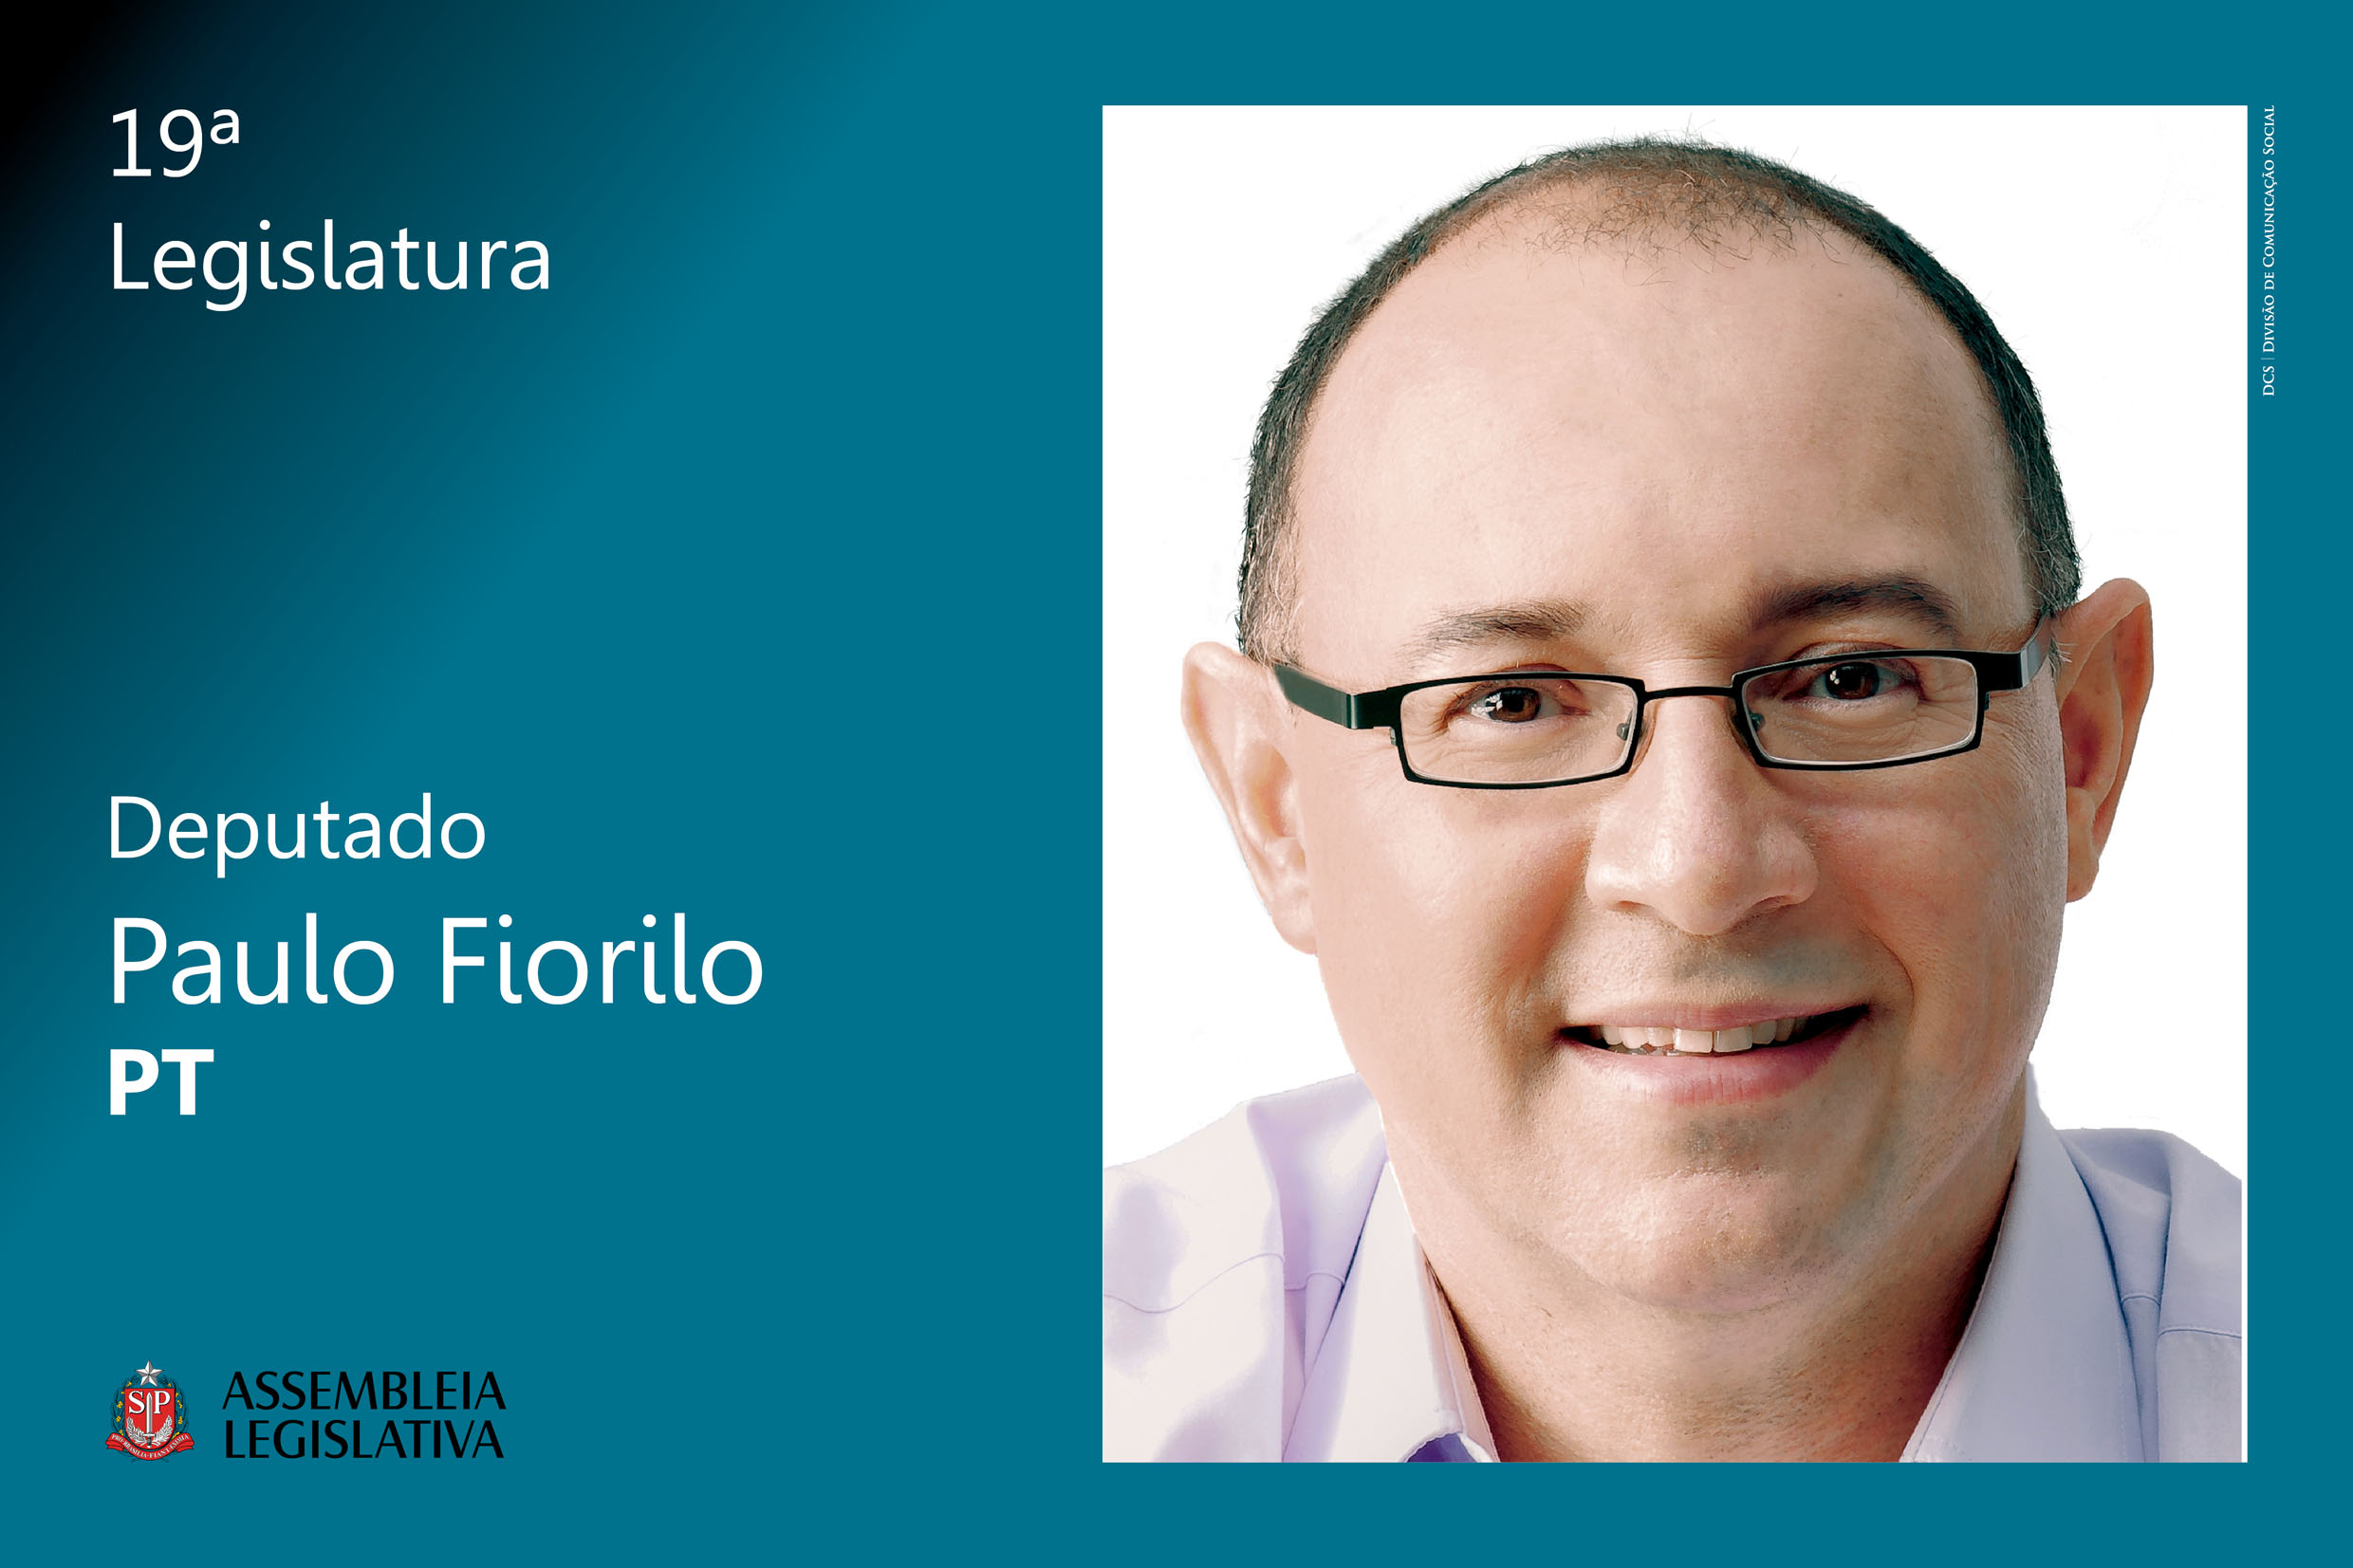 Paulo Fiorilo (PT)<a style='float:right' href='https://www3.al.sp.gov.br/repositorio/noticia/N-03-2019/fg231276.jpg' target=_blank><img src='/_img/material-file-download-white.png' width='14px' alt='Clique para baixar a imagem'></a>